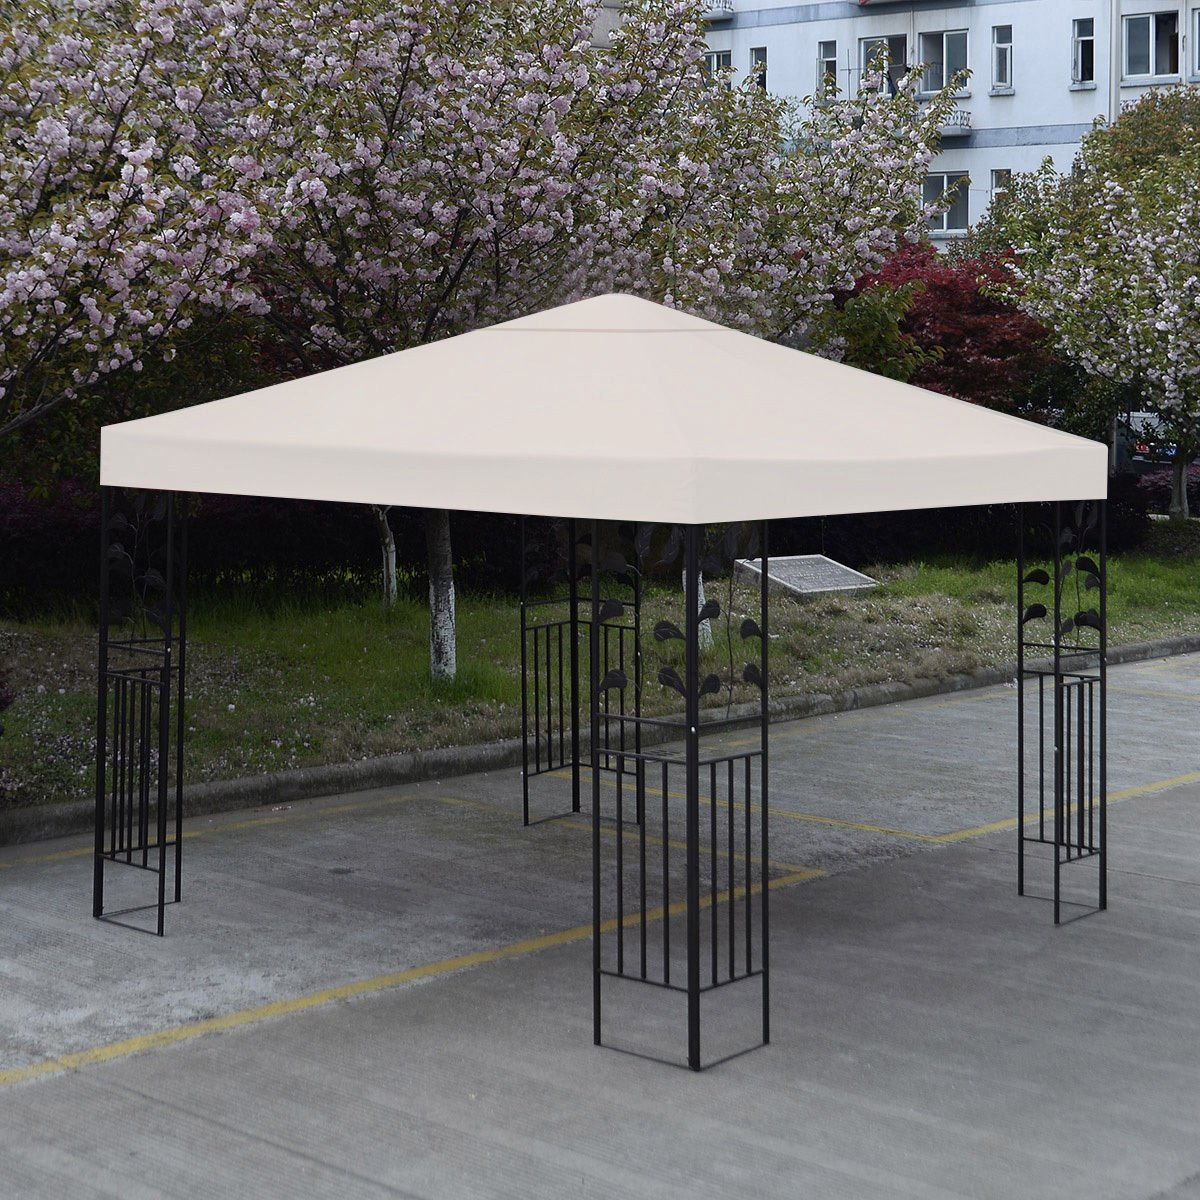 New 10' X 10' Gazebo Top Cover Patio Canopy Replacement 1-Tier Beige